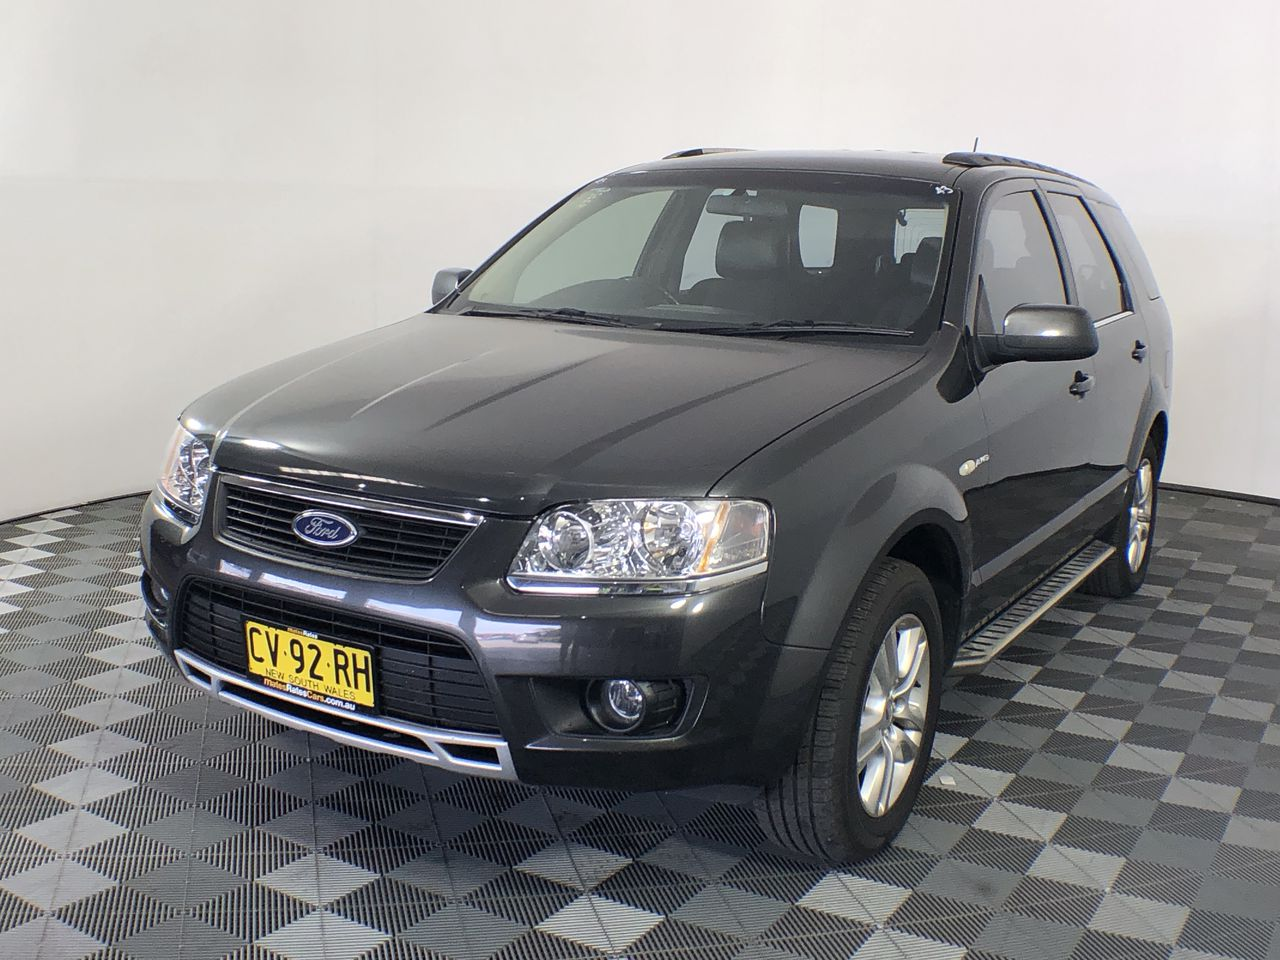 2010 Ford Territory TS SY II Automatic 7 Seats Wagon